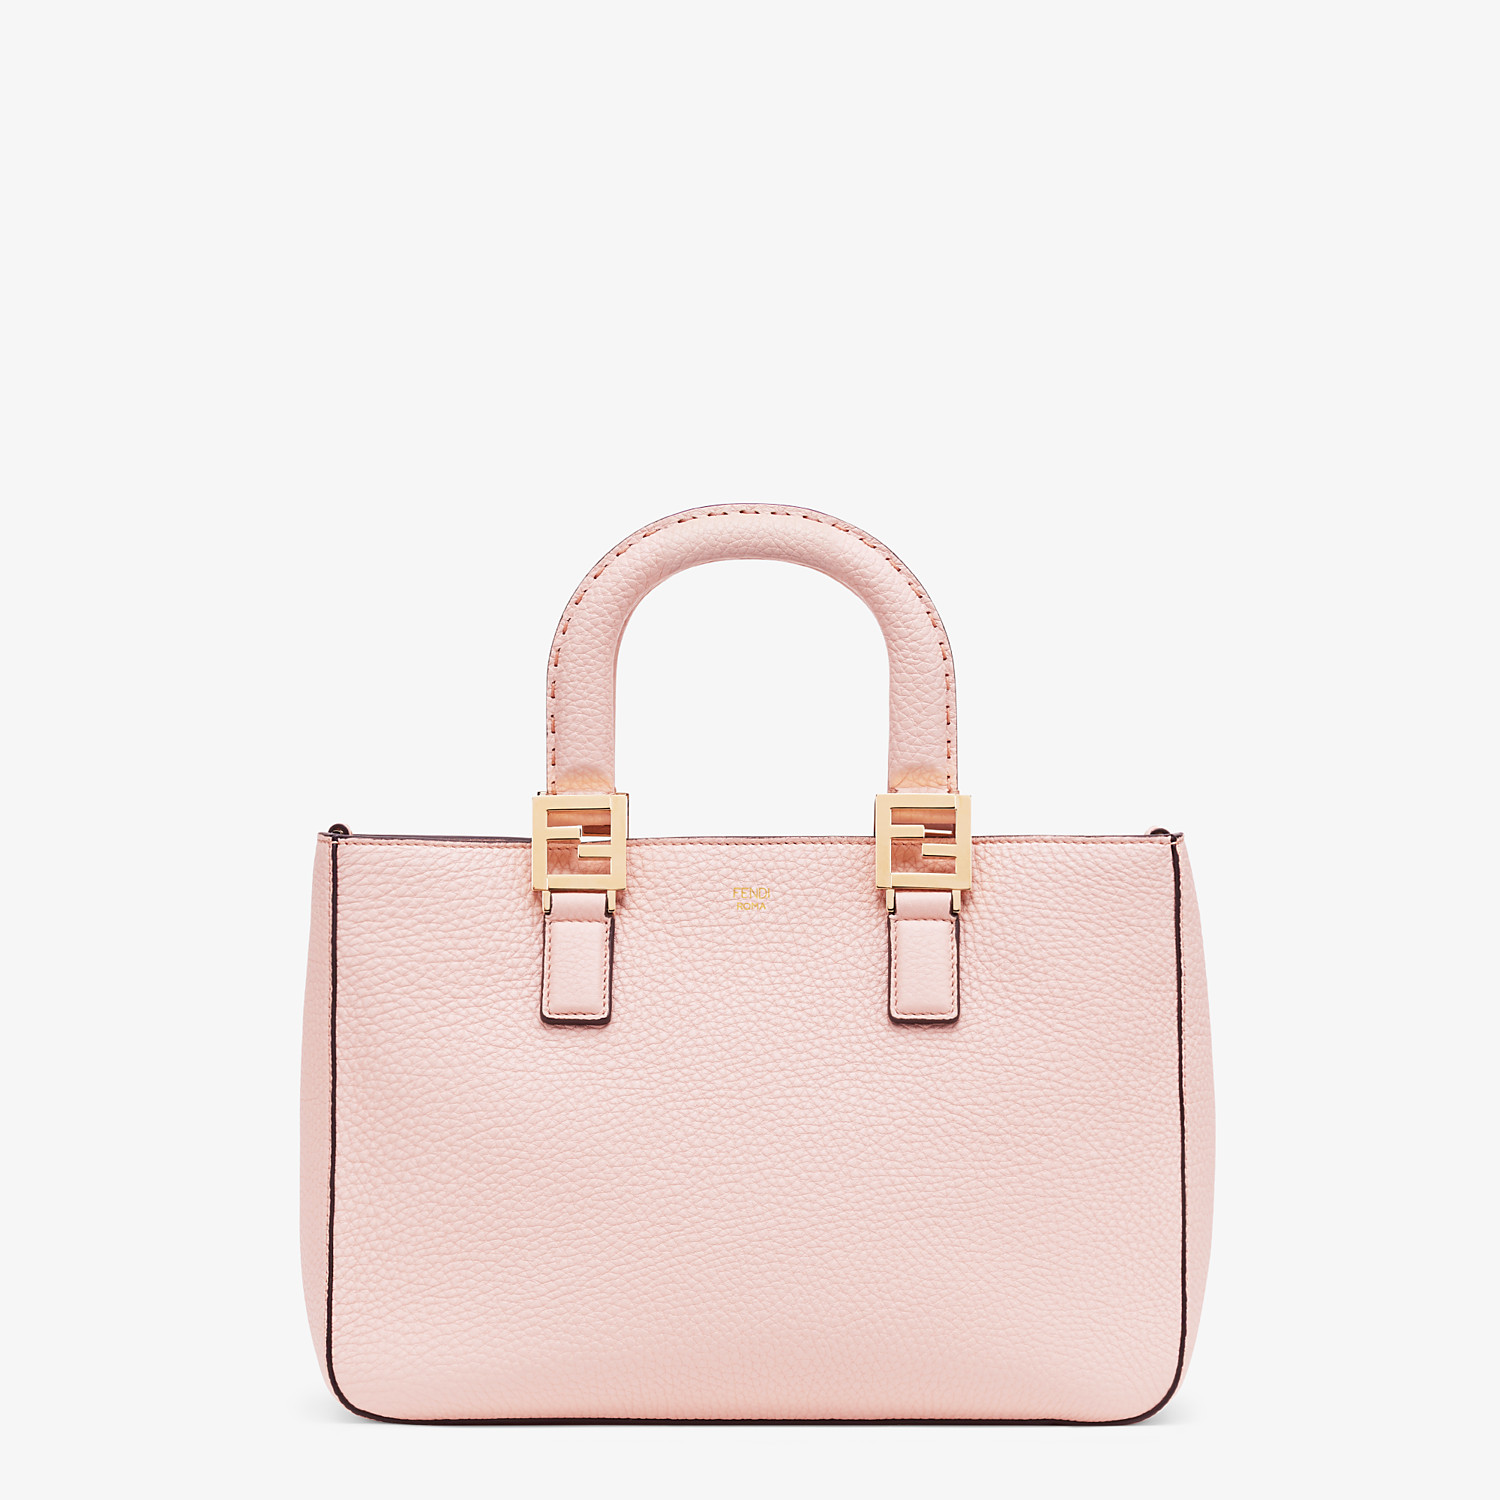 FENDI SMALL FF TOTE - Pink leather bag - view 1 detail